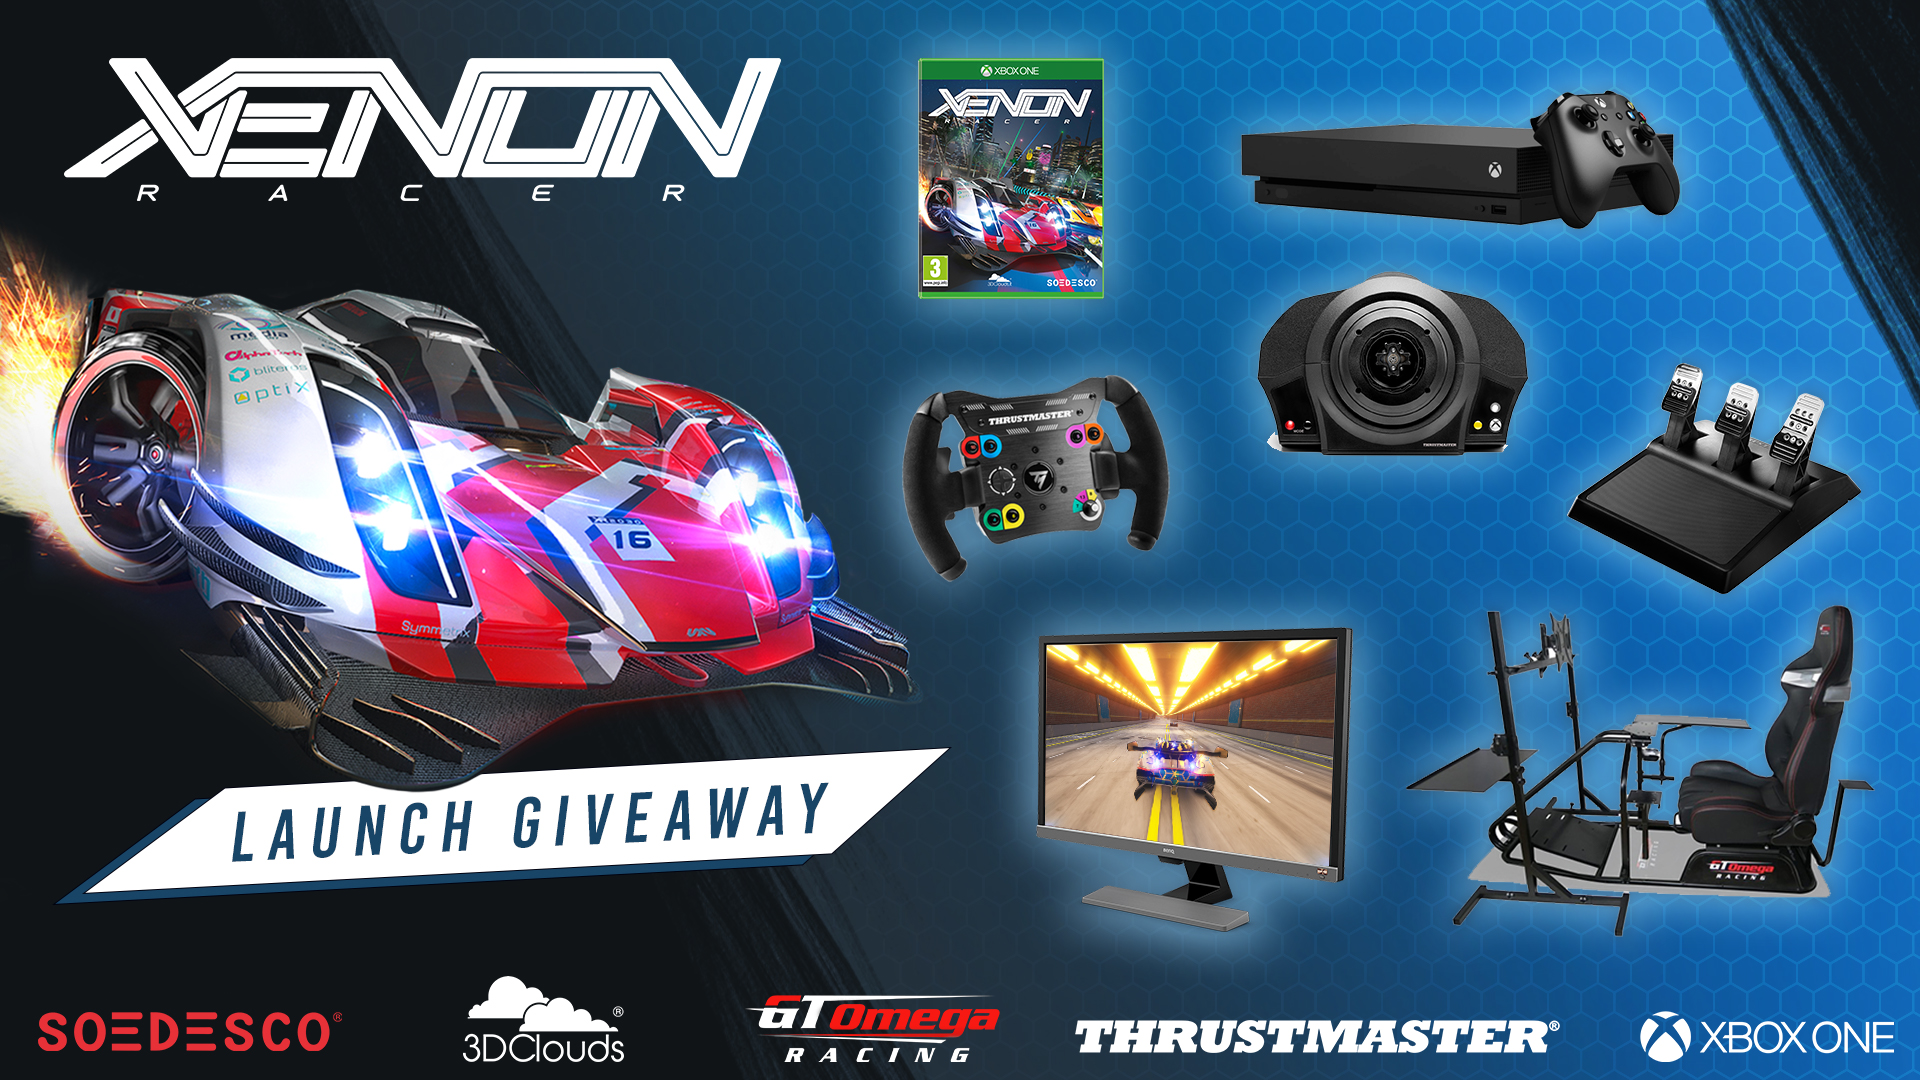 Xenon Racer Giveaway